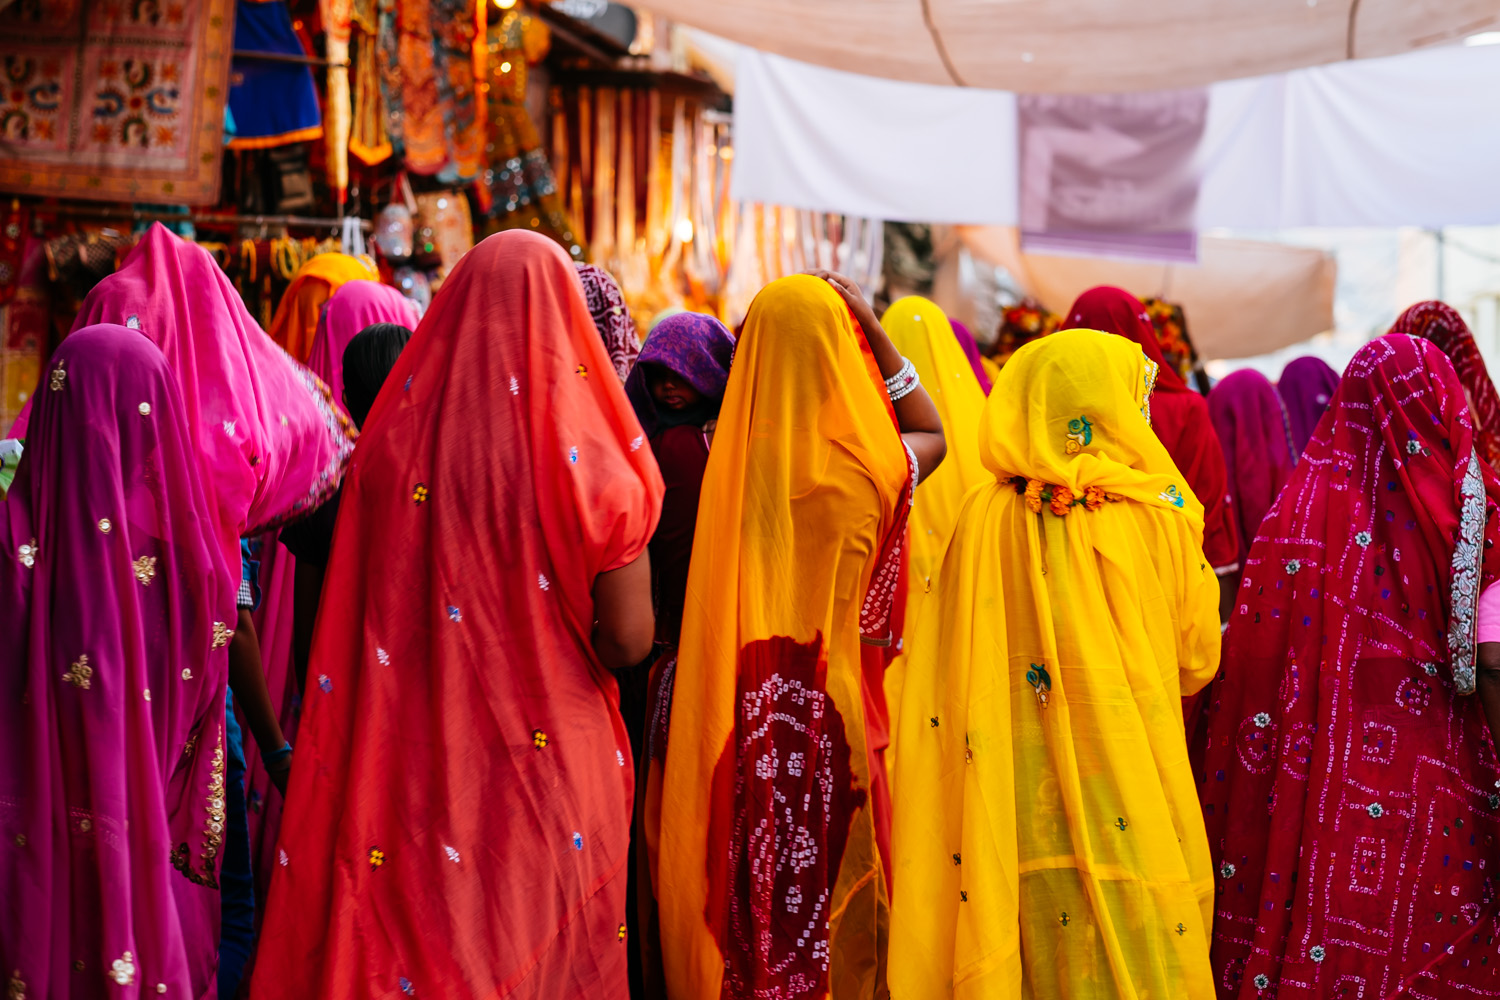 Wearing traditional clothes, women walk through the streets of Pushkar, India.